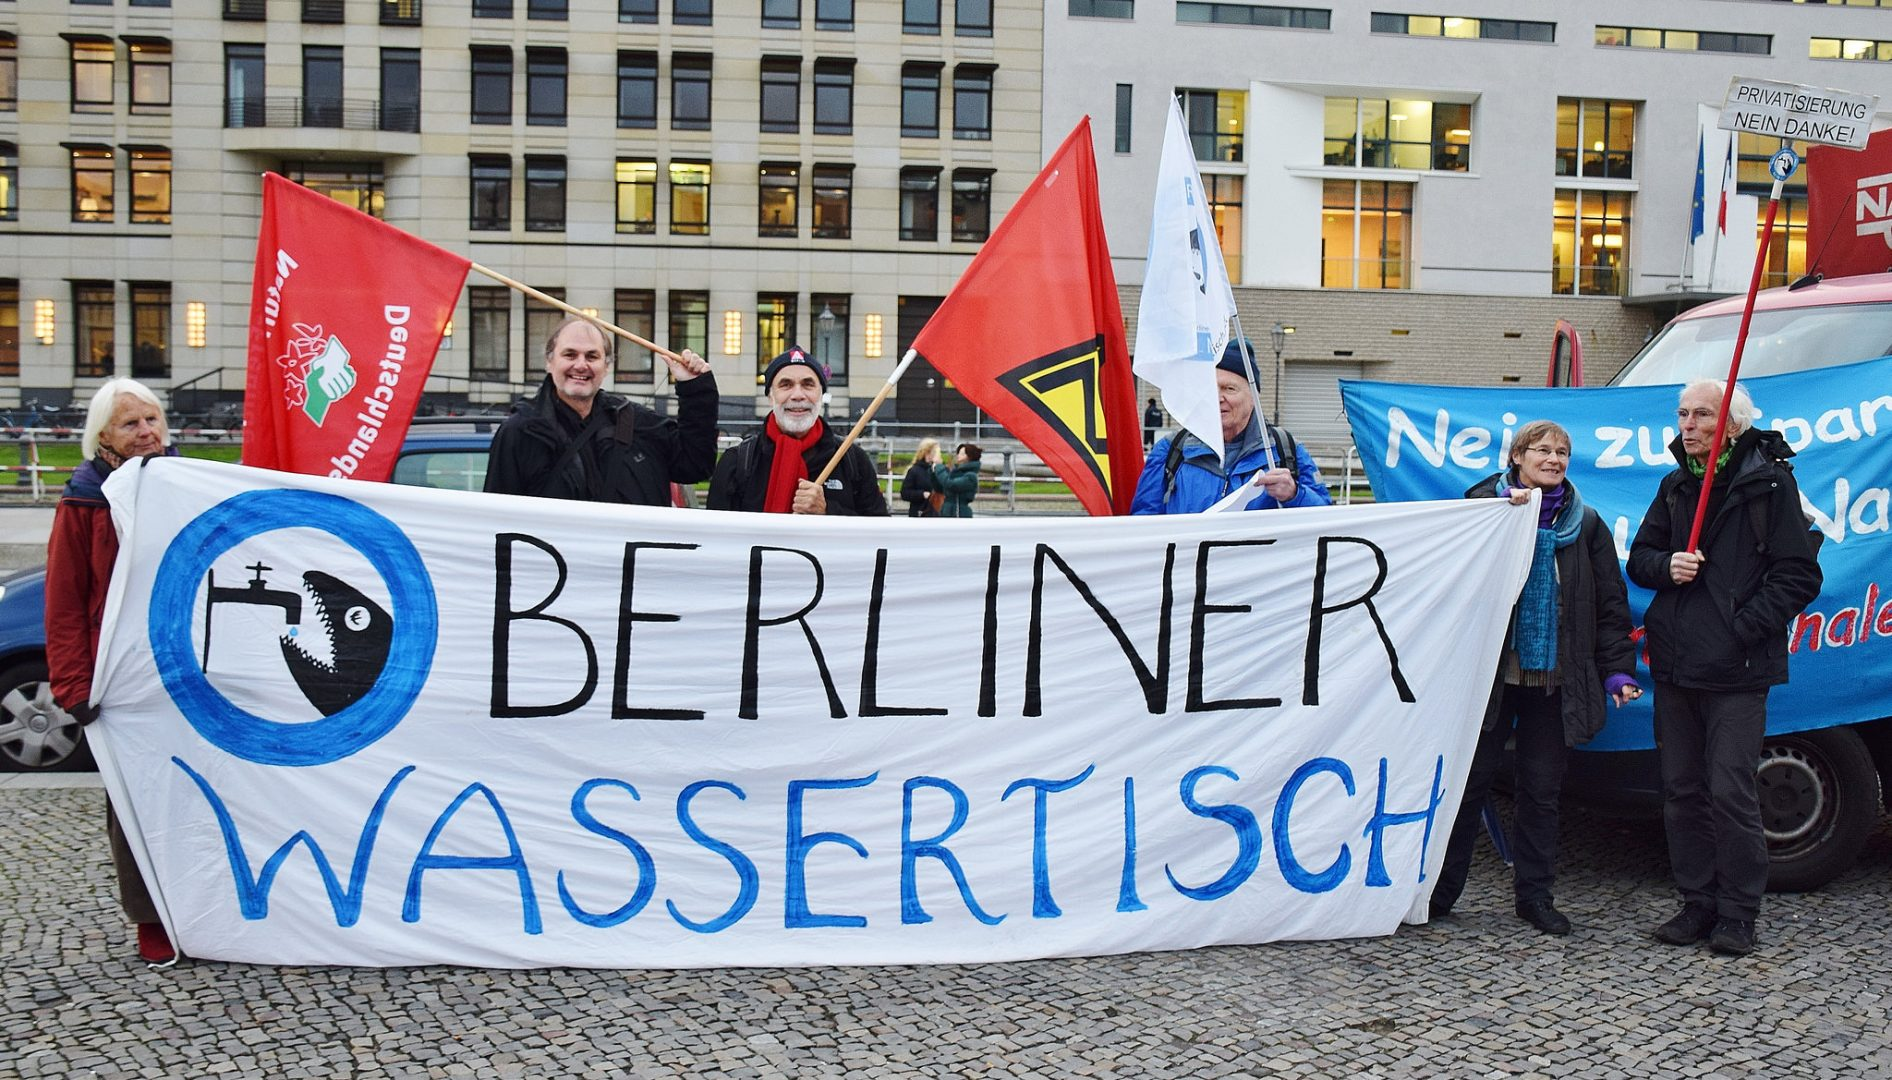 Berlin, Germany: Berliners defy government and win water remunicipalisation